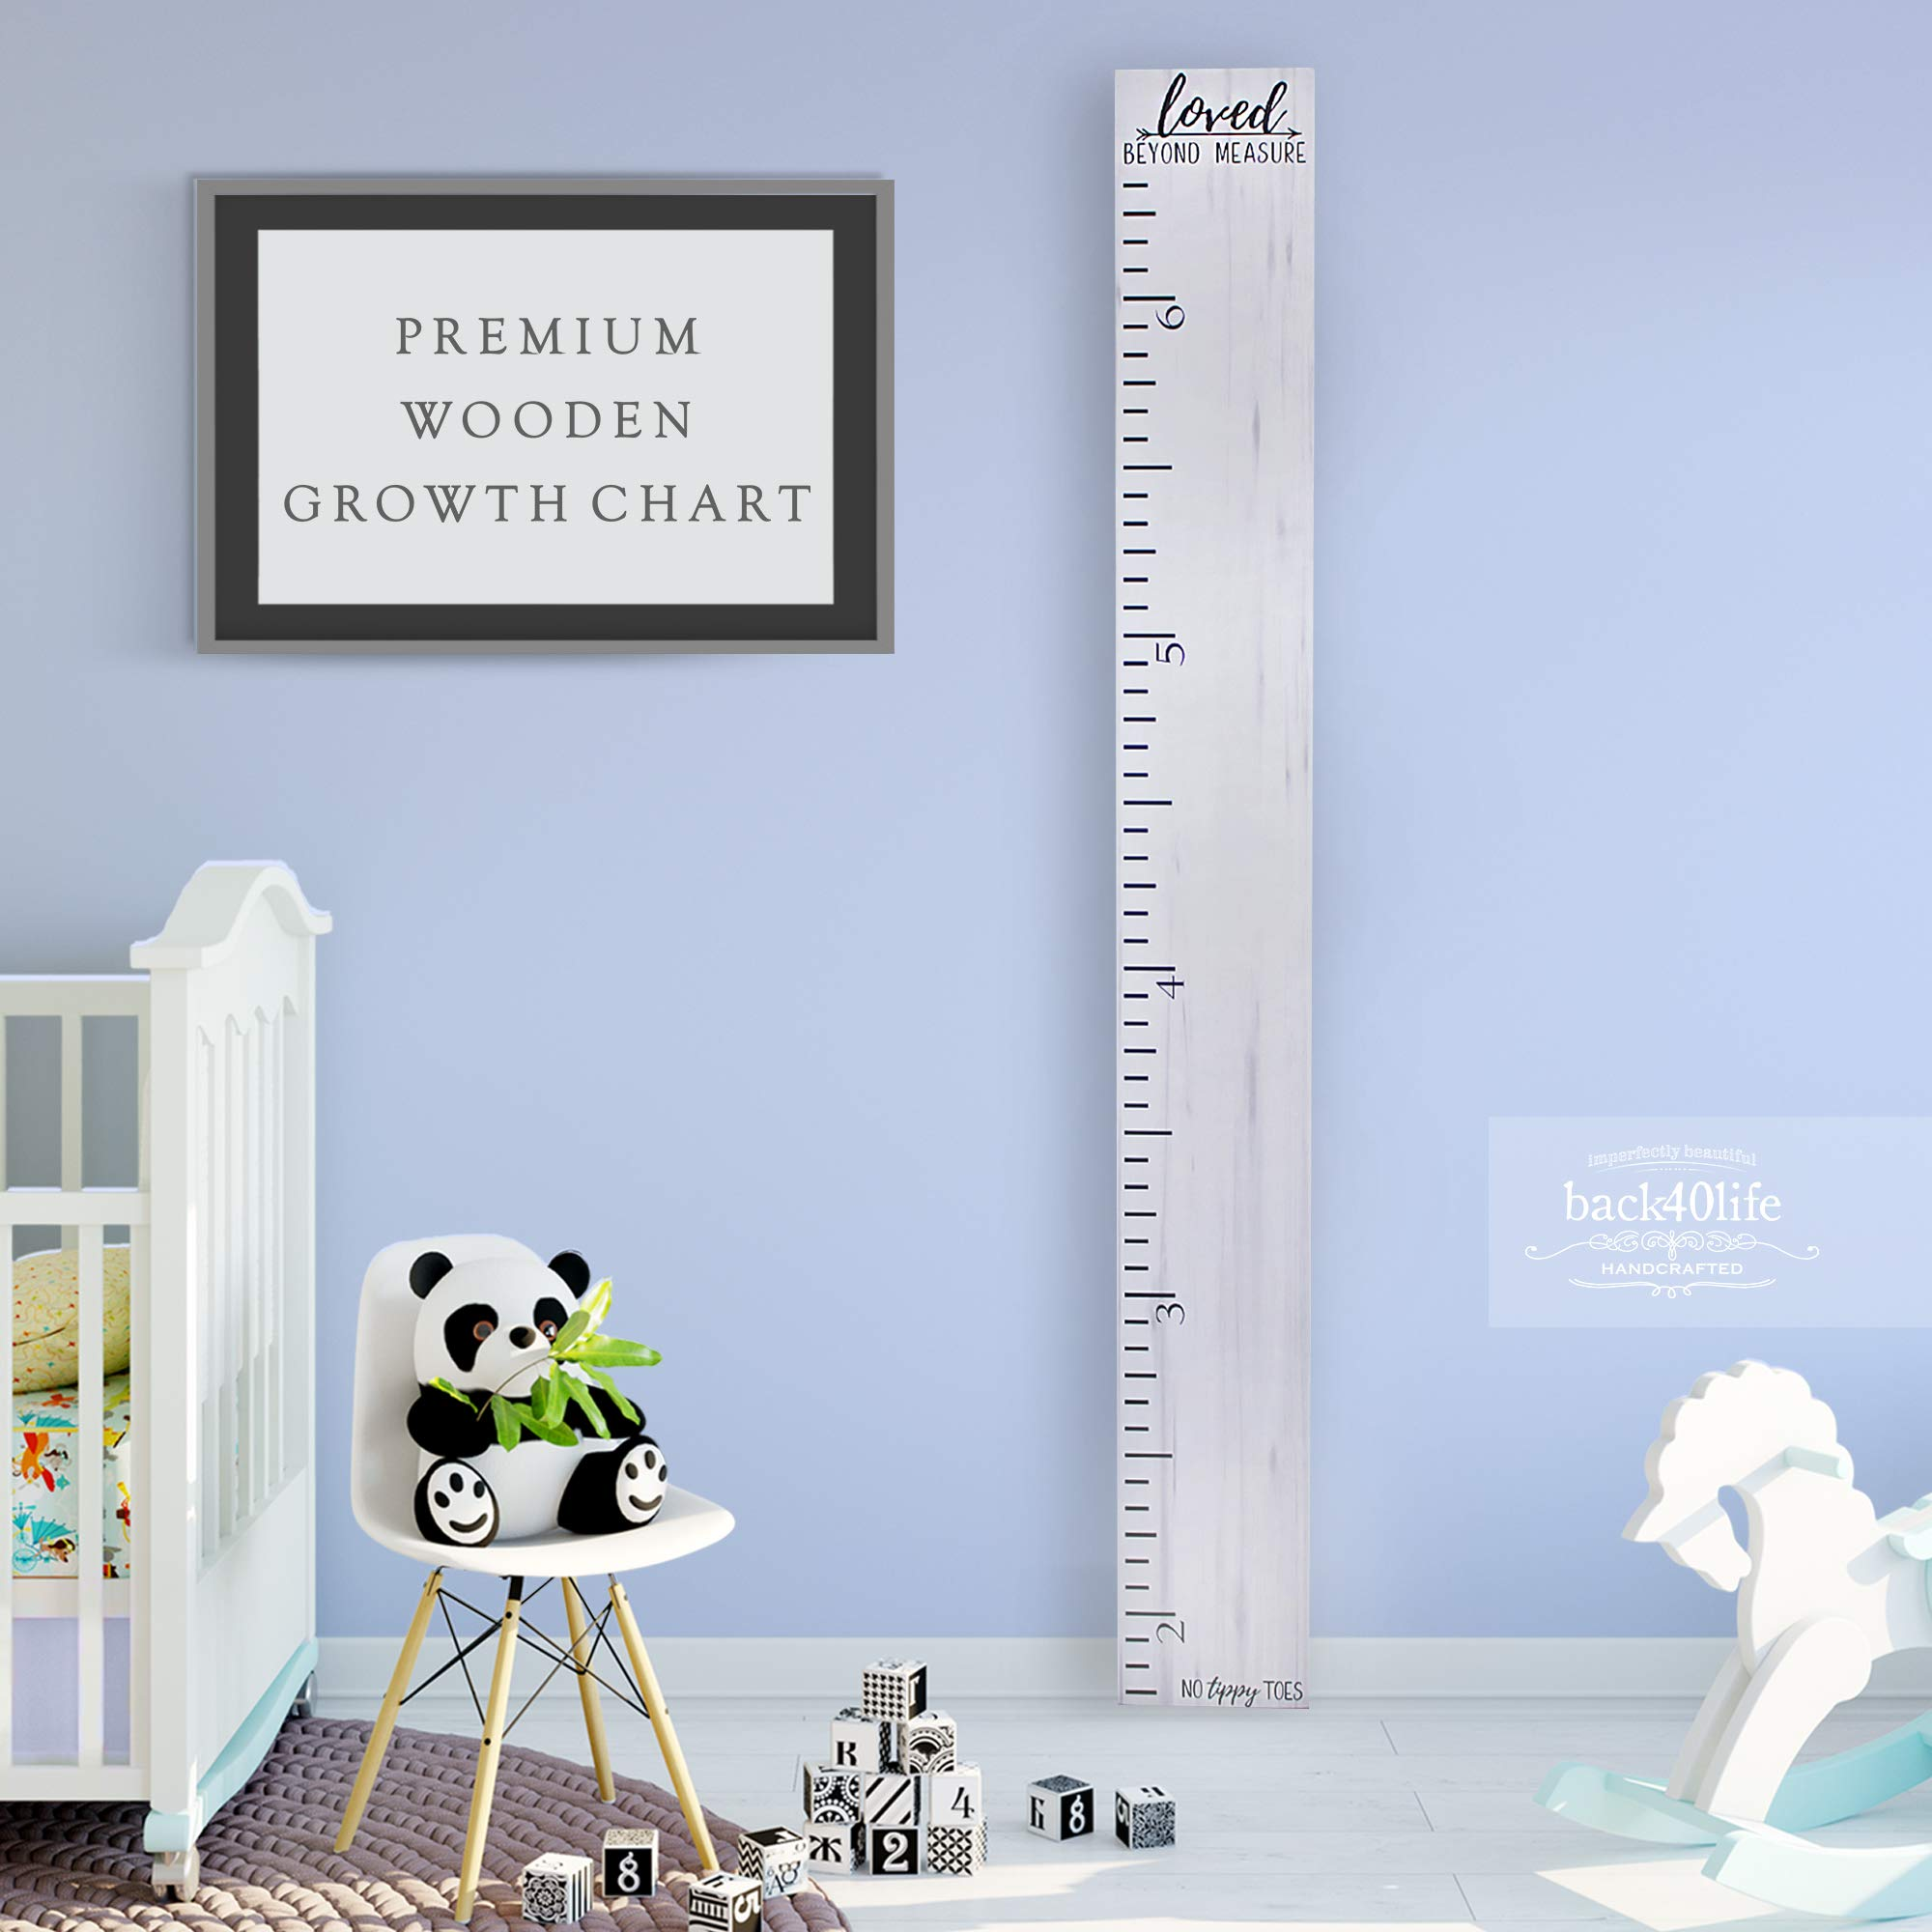 Back40Life - Premium Series - (No Tippy Toes - Loved Beyond Measure) Wooden Growth Chart Height Ruler (Weathered White) by Back40Life